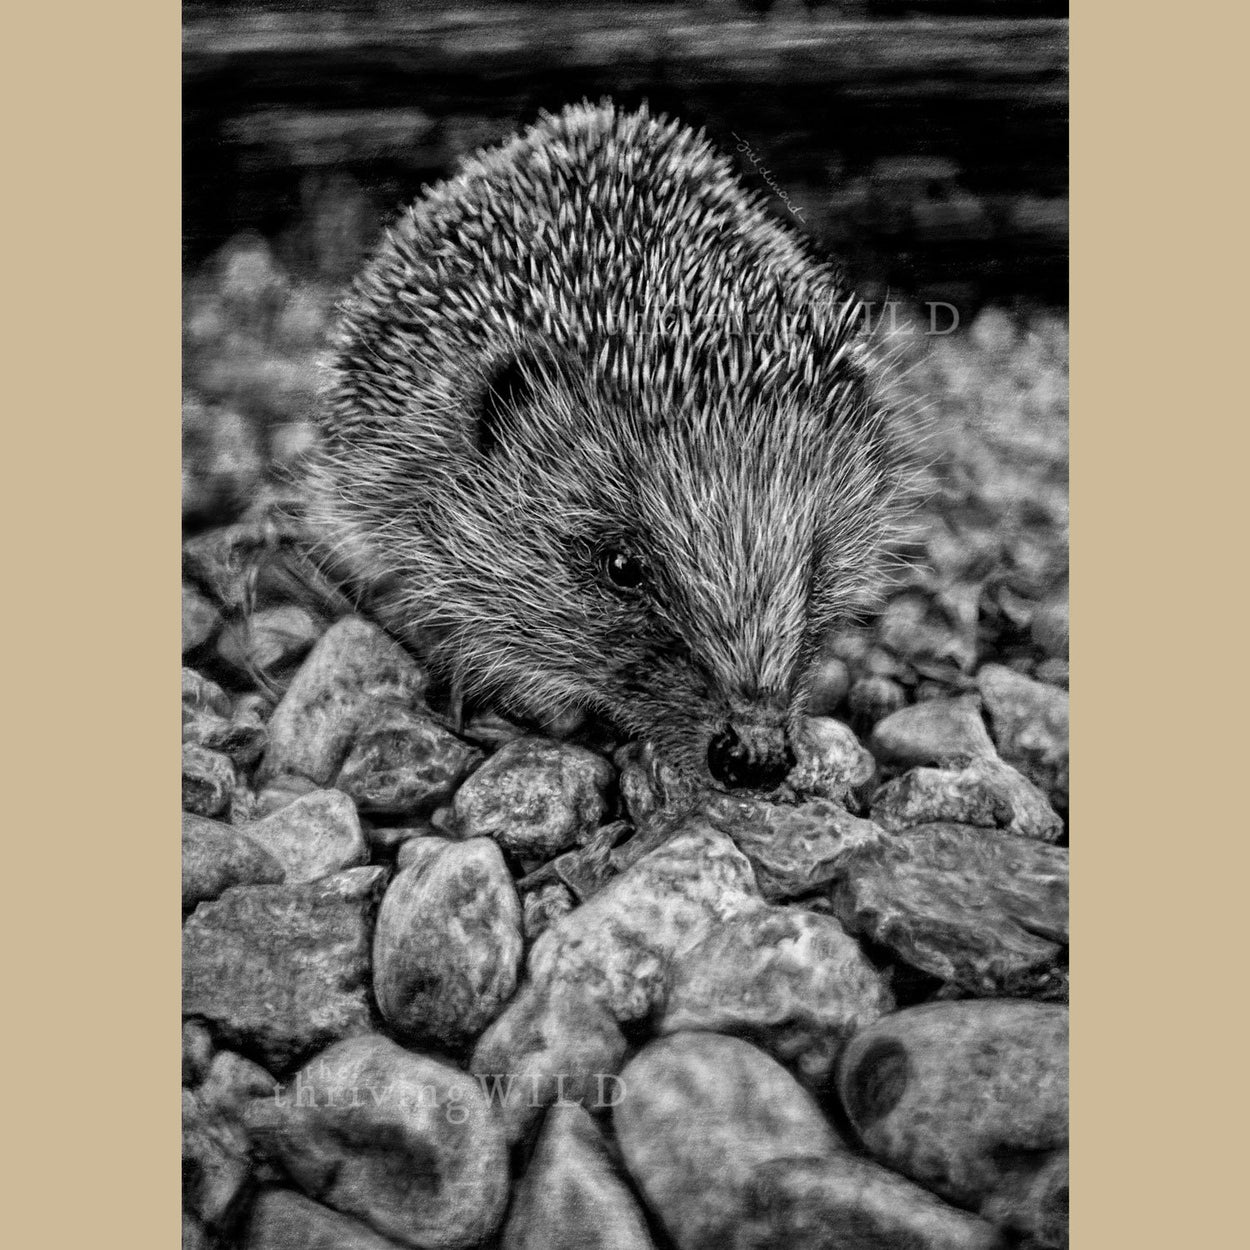 Hedgehog Digital Drawing Procreate - The Thriving Wild